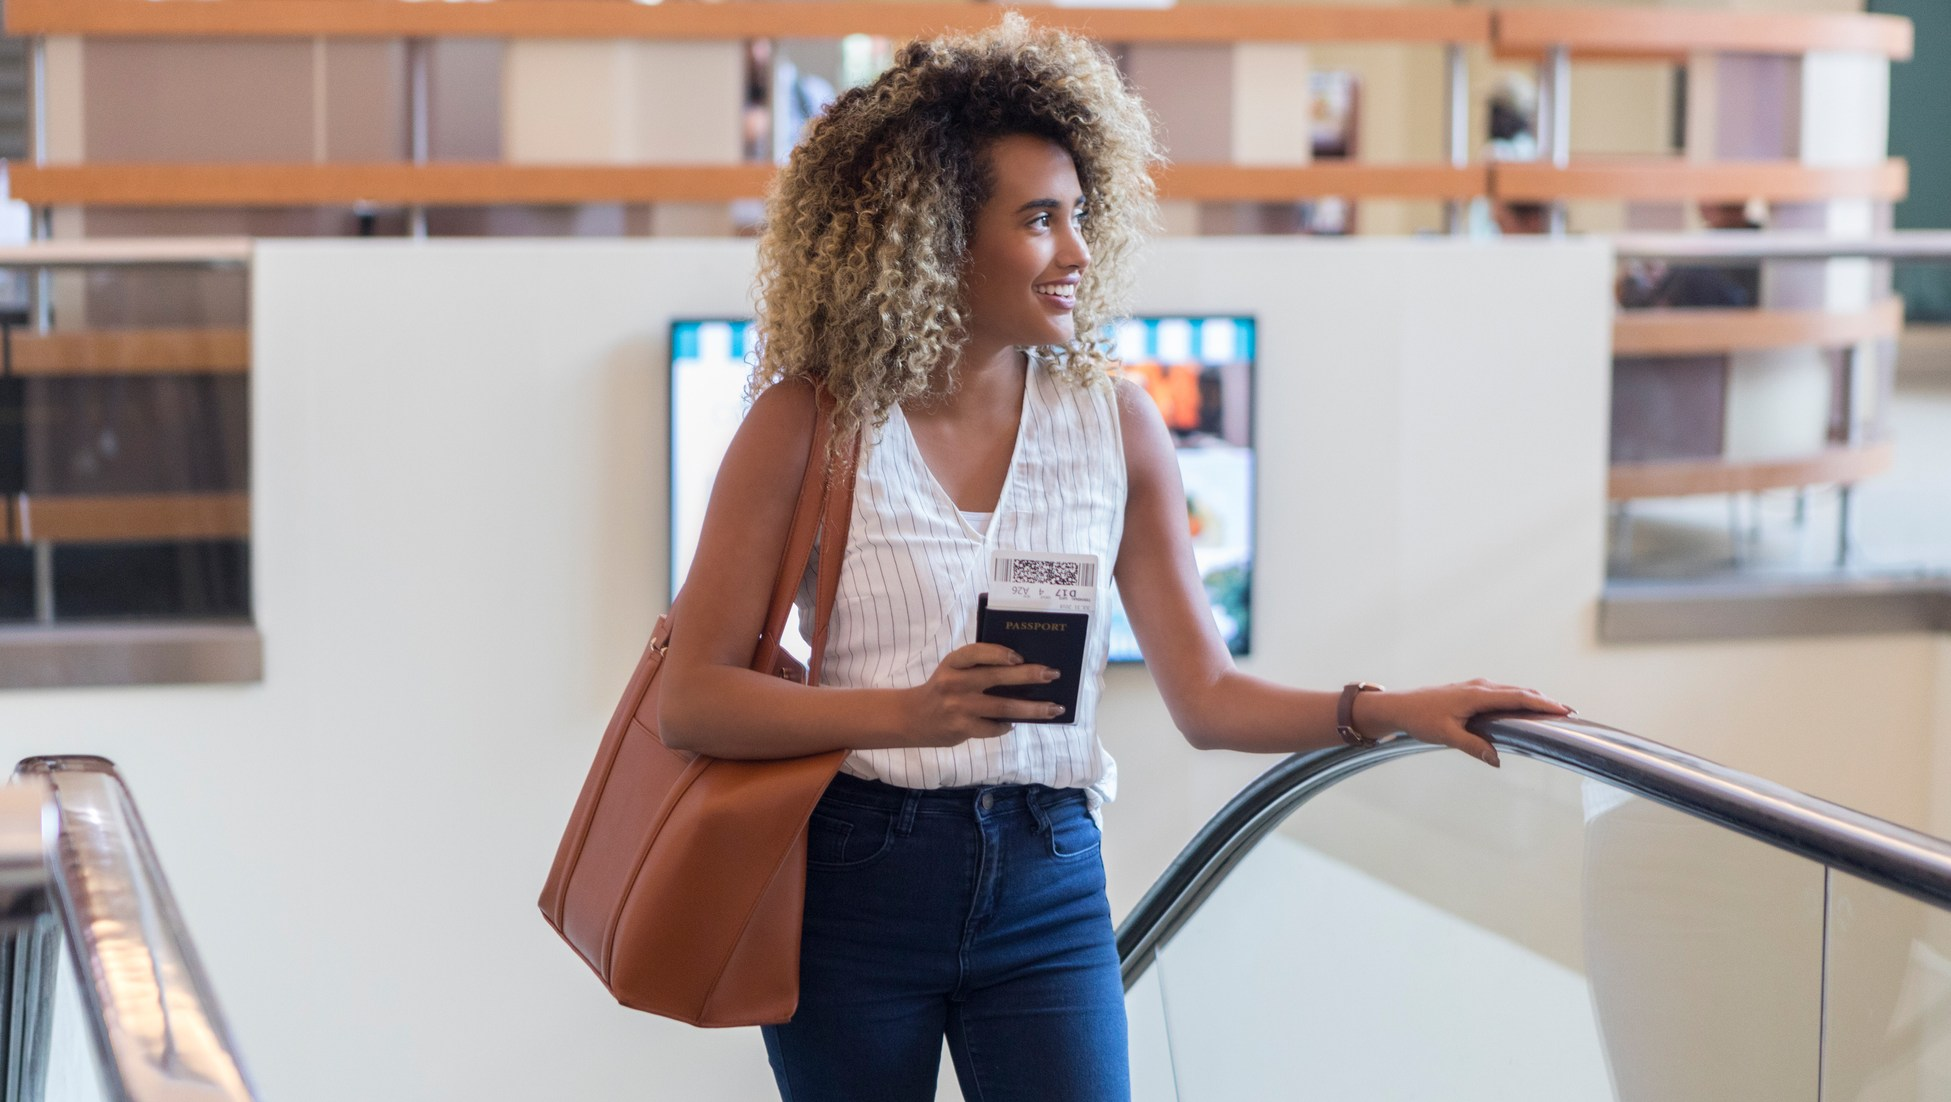 Young woman ascends escalator in airport terminal